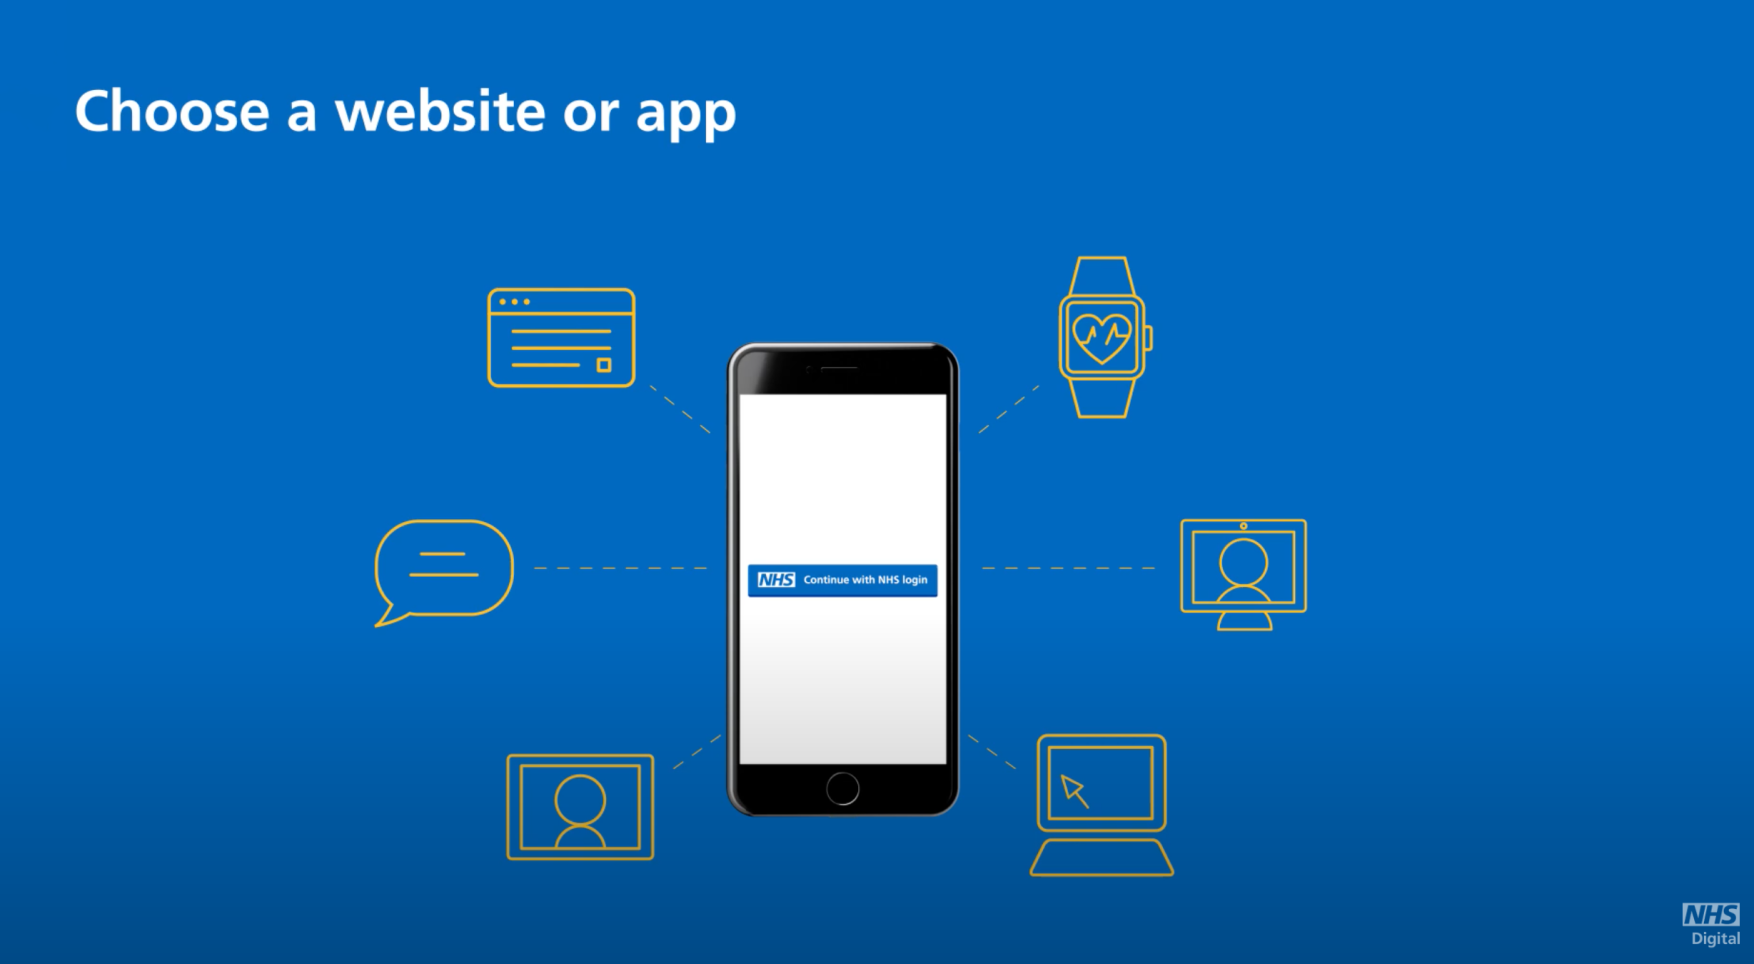 Graphic demonstrating that you can access the NHS login via the website or an app.